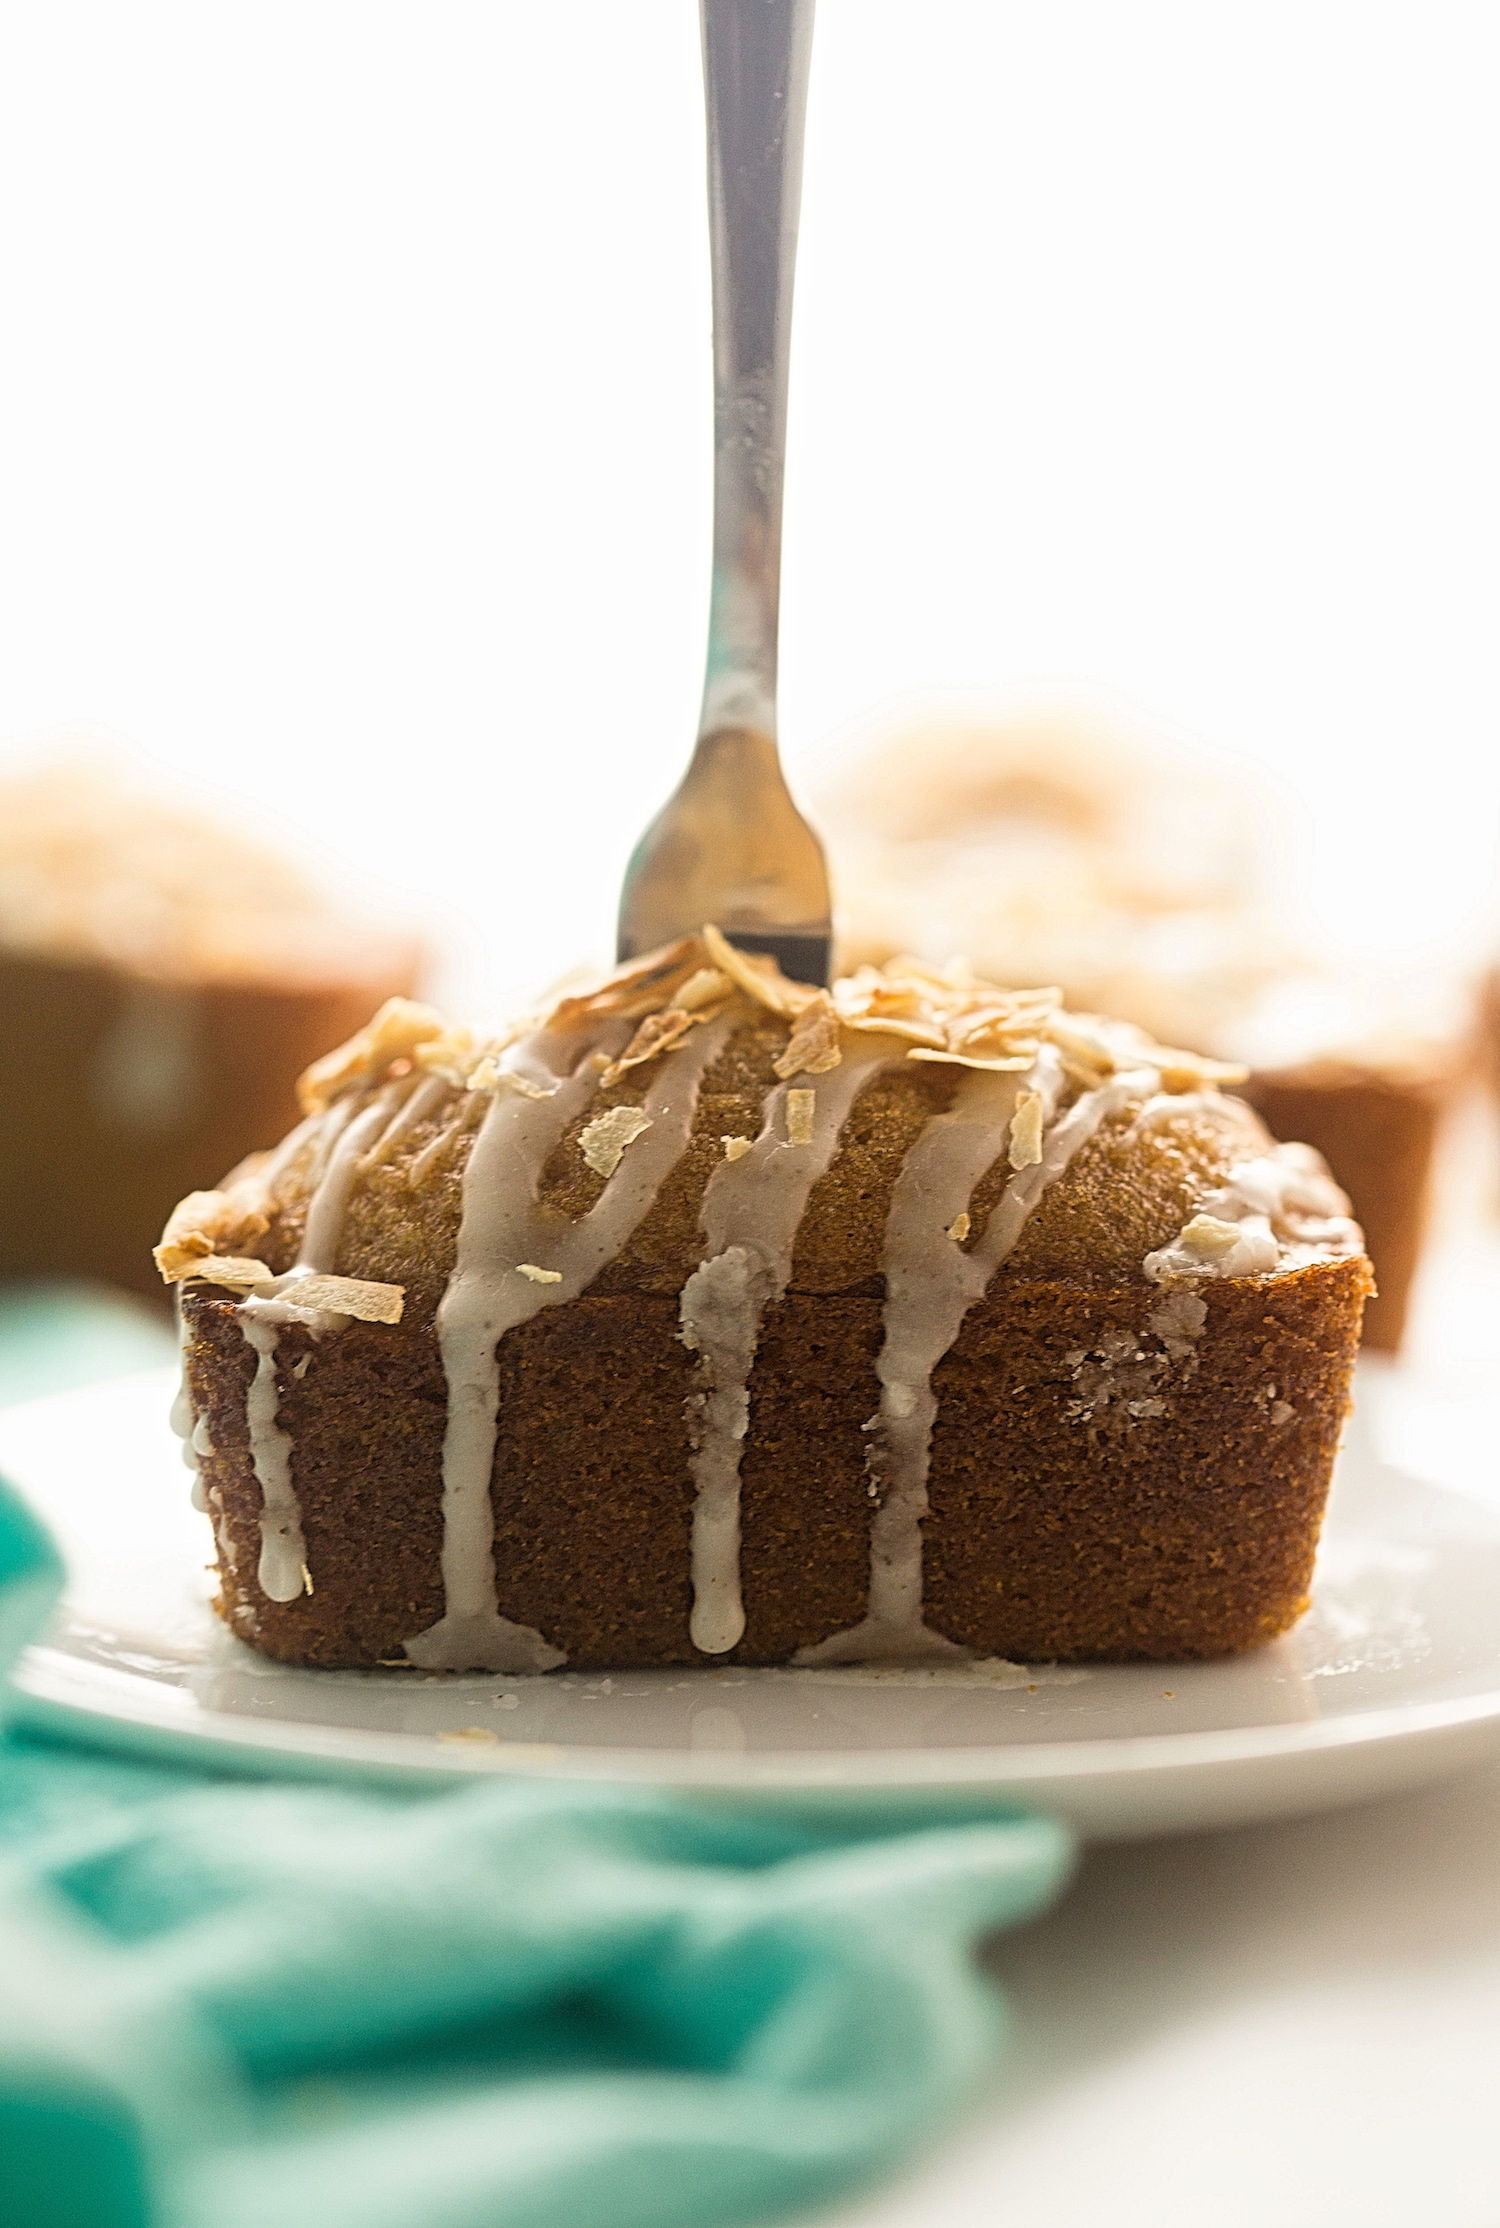 Mini Glazed Honey Loaf Cakes: soft, fluffy, perfectly spiced honey cakes drizzled with a cinnamon glaze and topped with toasted coconut flakes. Stays soft for weeks! | TrufflesandTrends.com